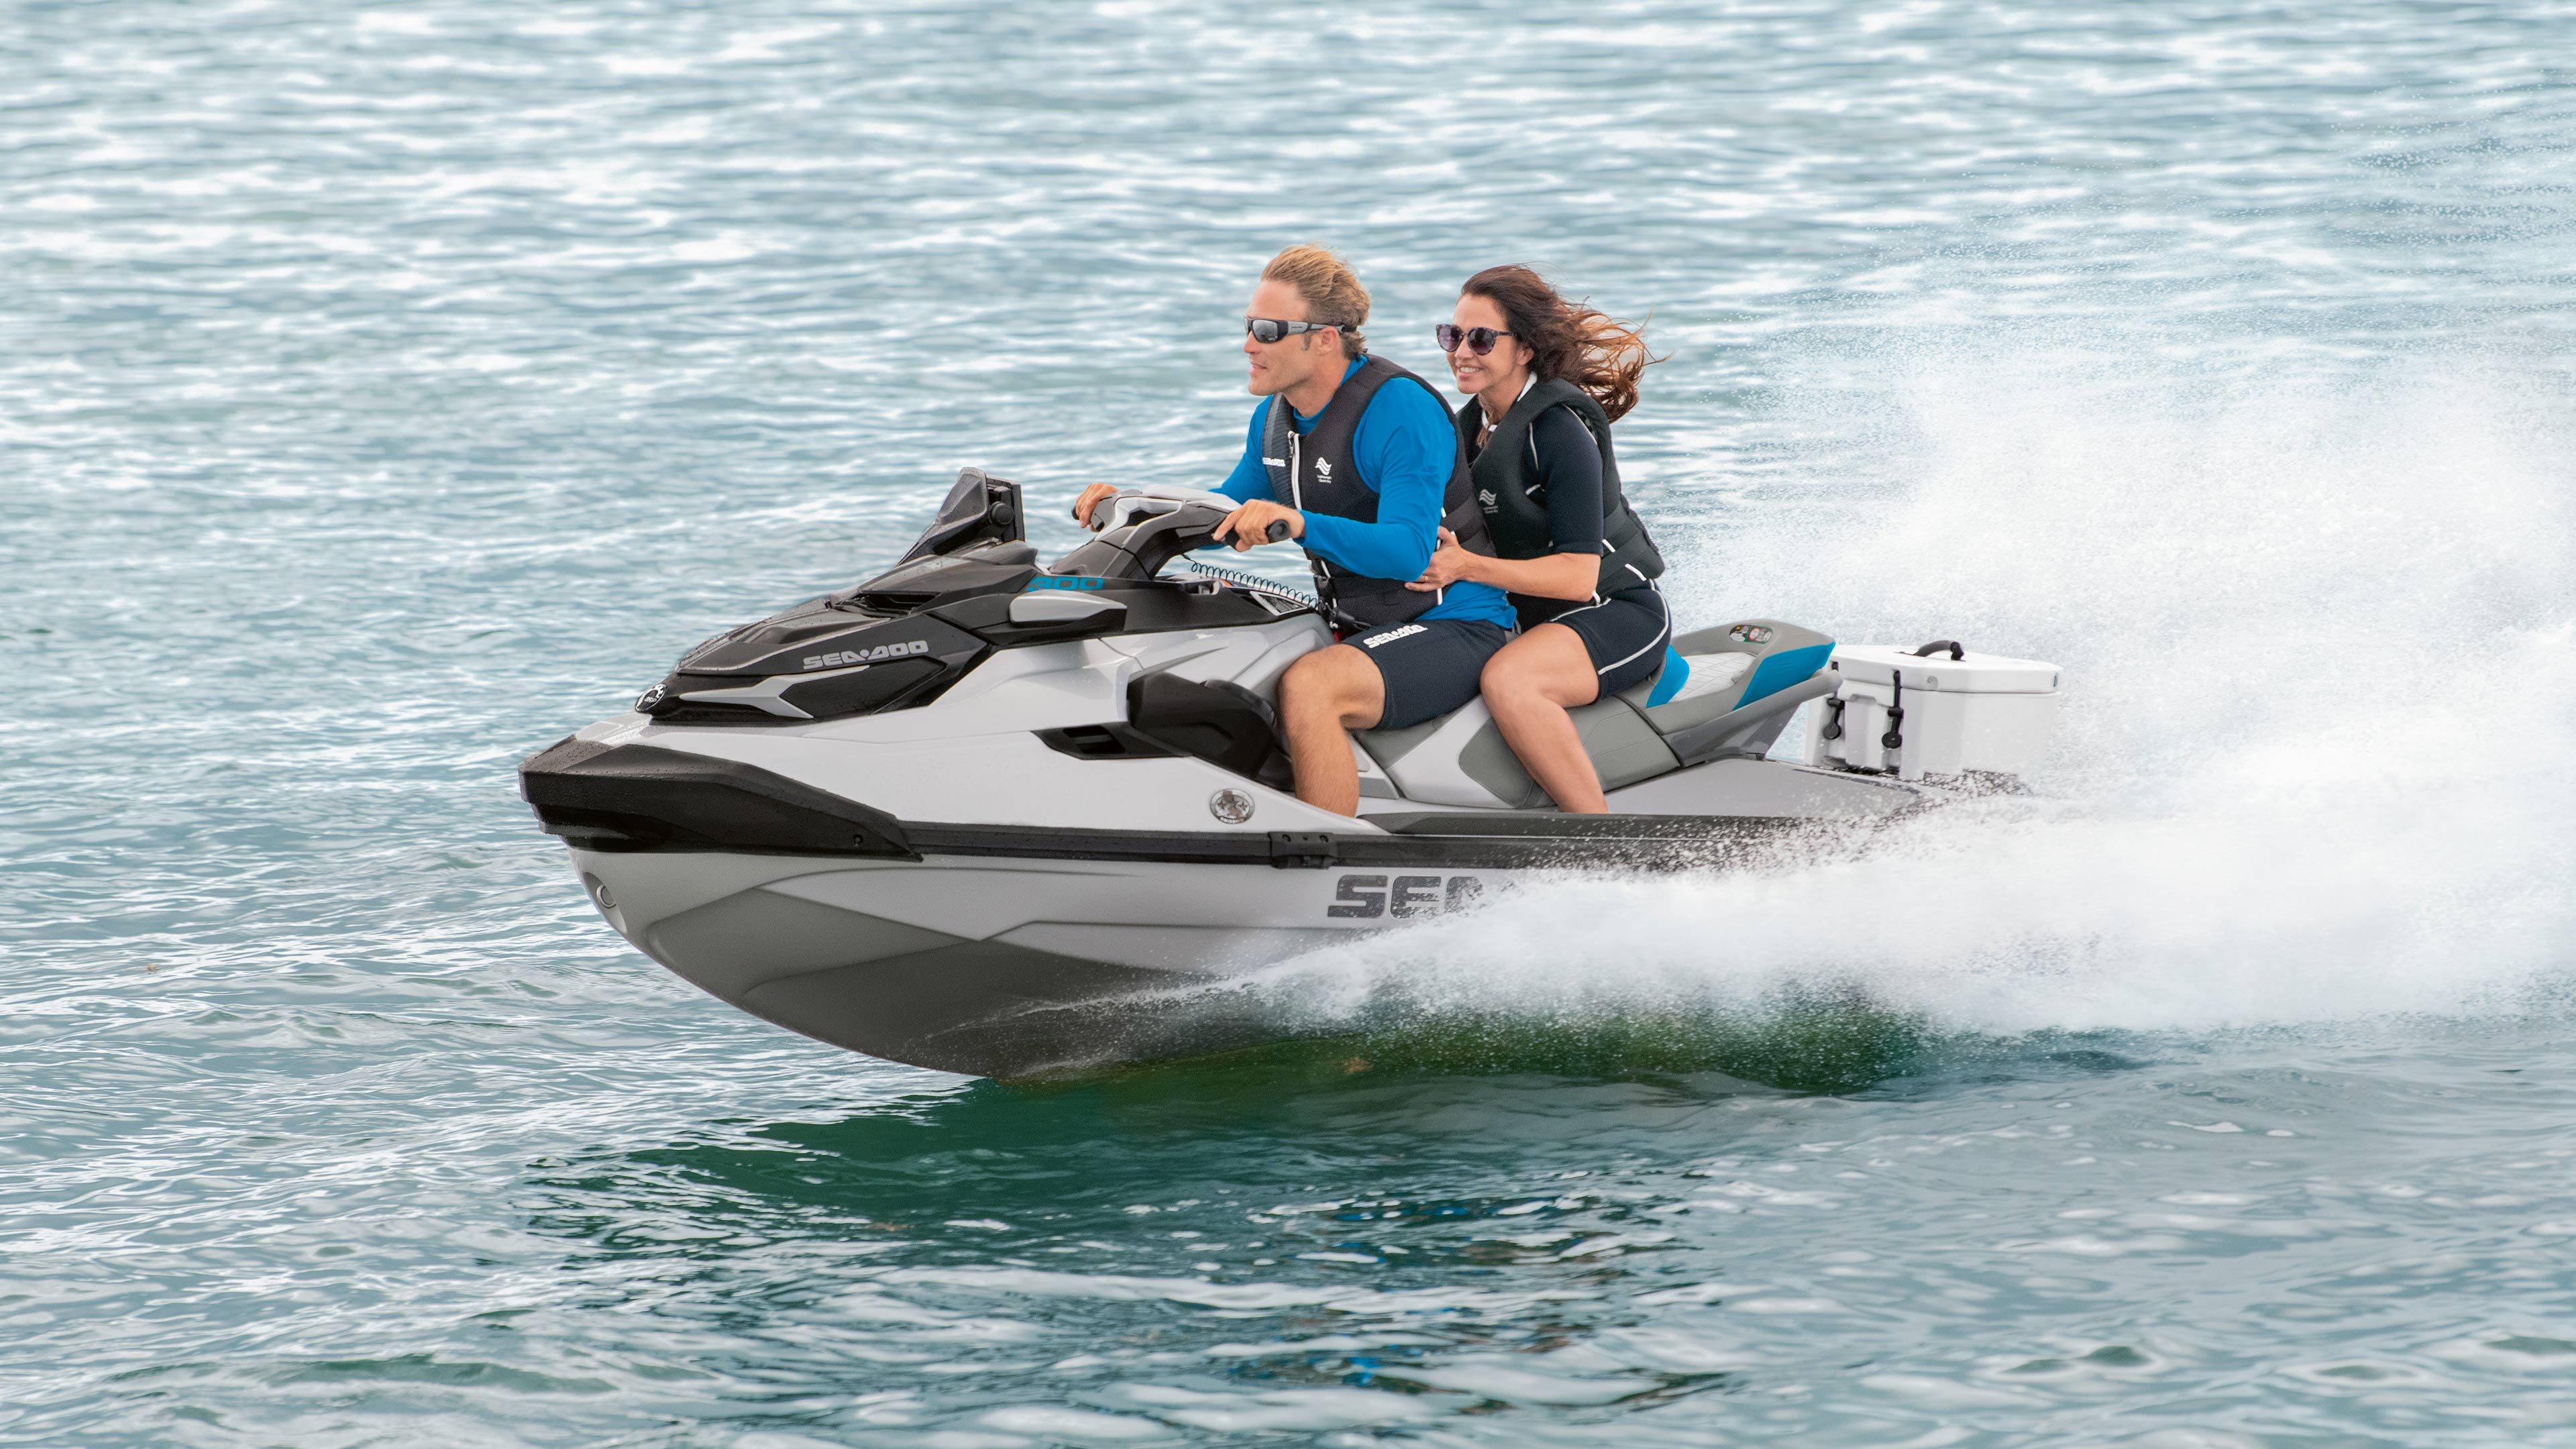 Couple Riding on a Sea-Doo